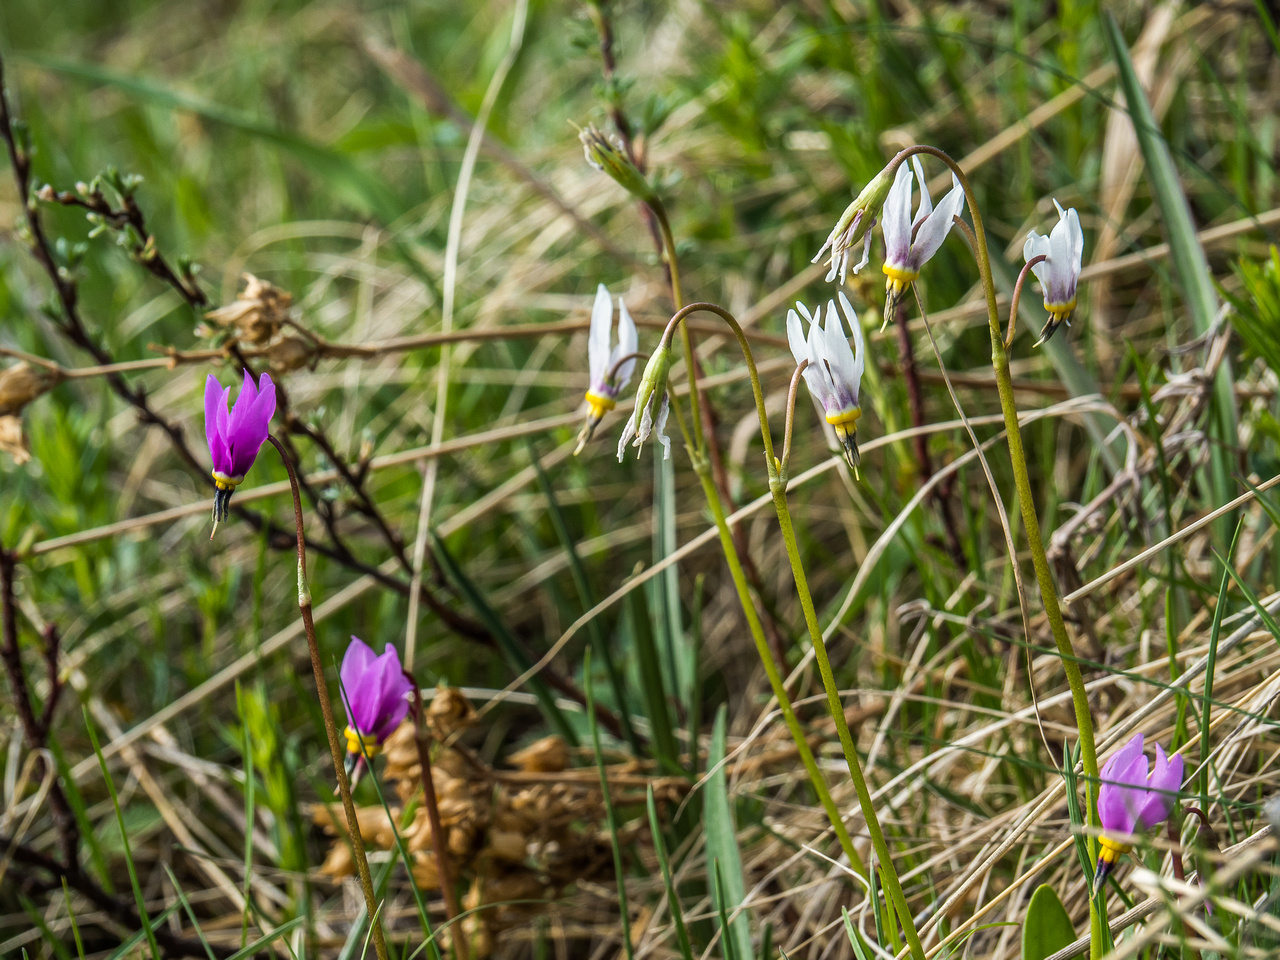 Shooting Star flowers with the white ones being older and fading from purple to white as they age. (dodecatheon conjugens)